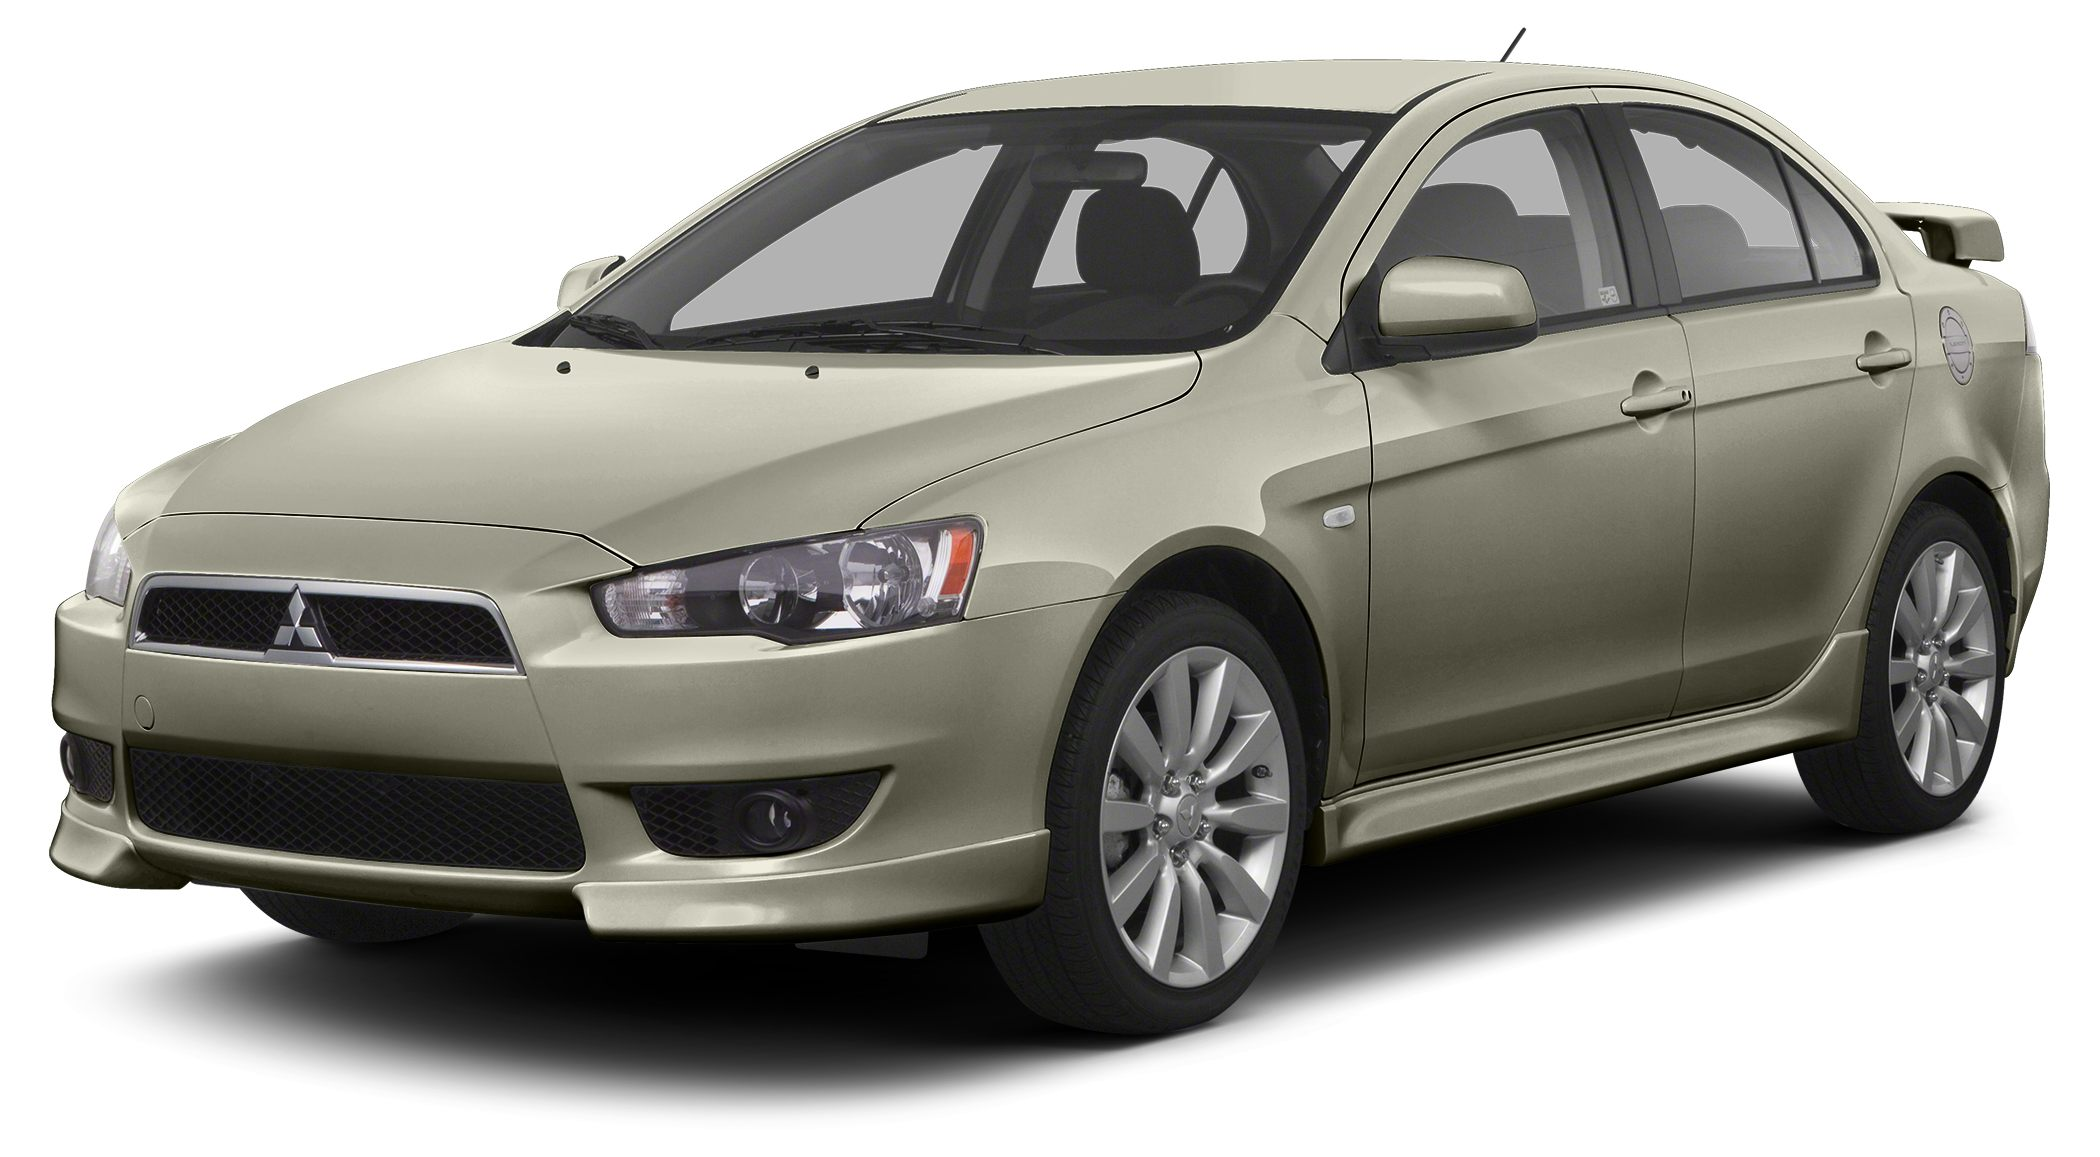 2013 Mitsubishi Lancer ES WE SELL OUR VEHICLES AT WHOLESALE PRICES AND STAND BEHIND OUR CARS